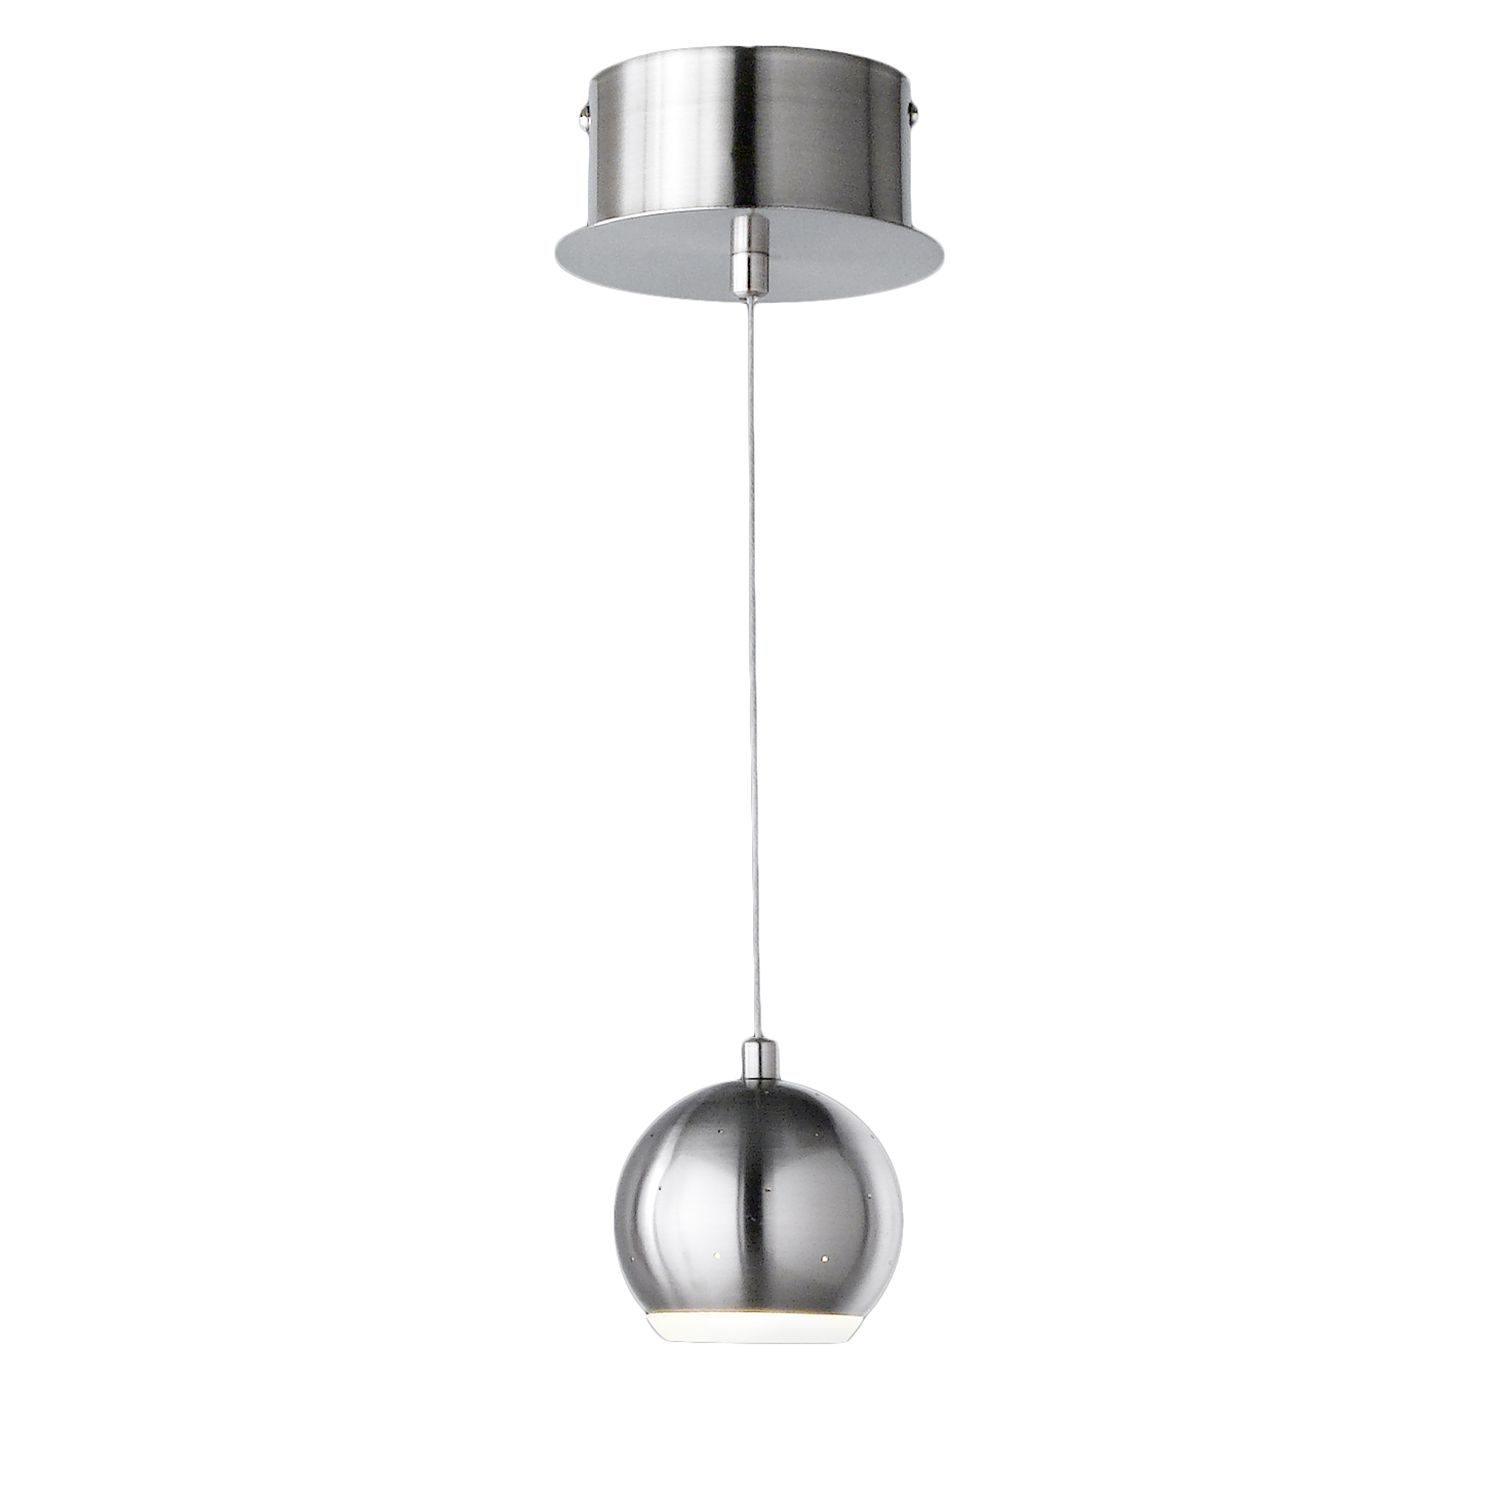 Suspension LED Pino I